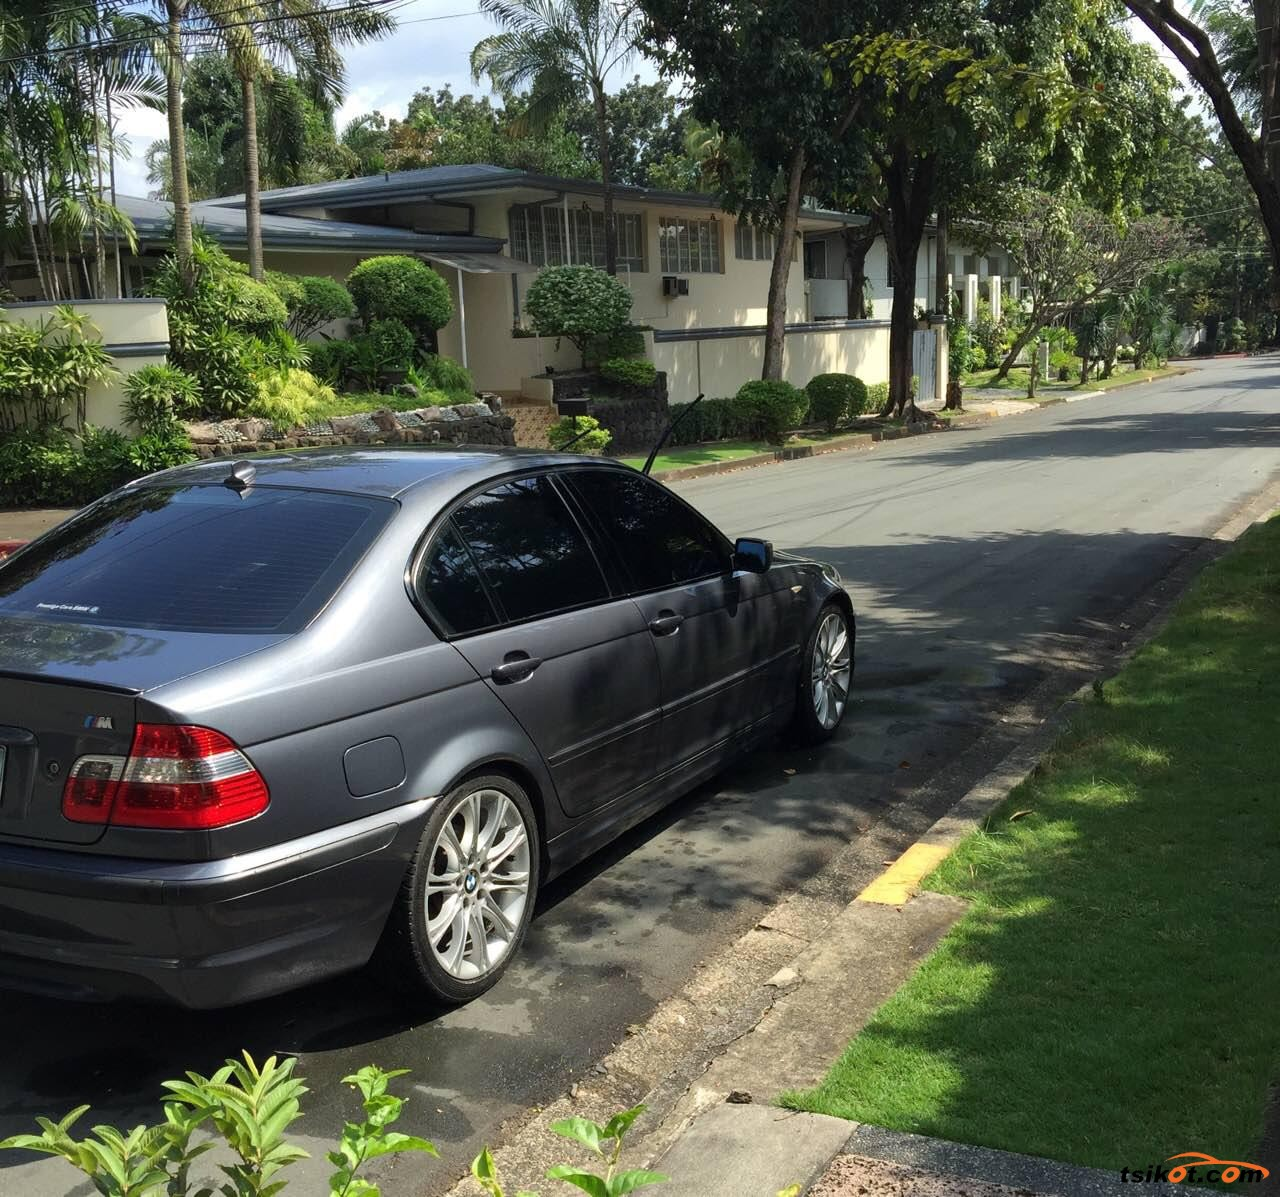 bmw 325i 2004 car for sale metro manila philippines. Black Bedroom Furniture Sets. Home Design Ideas